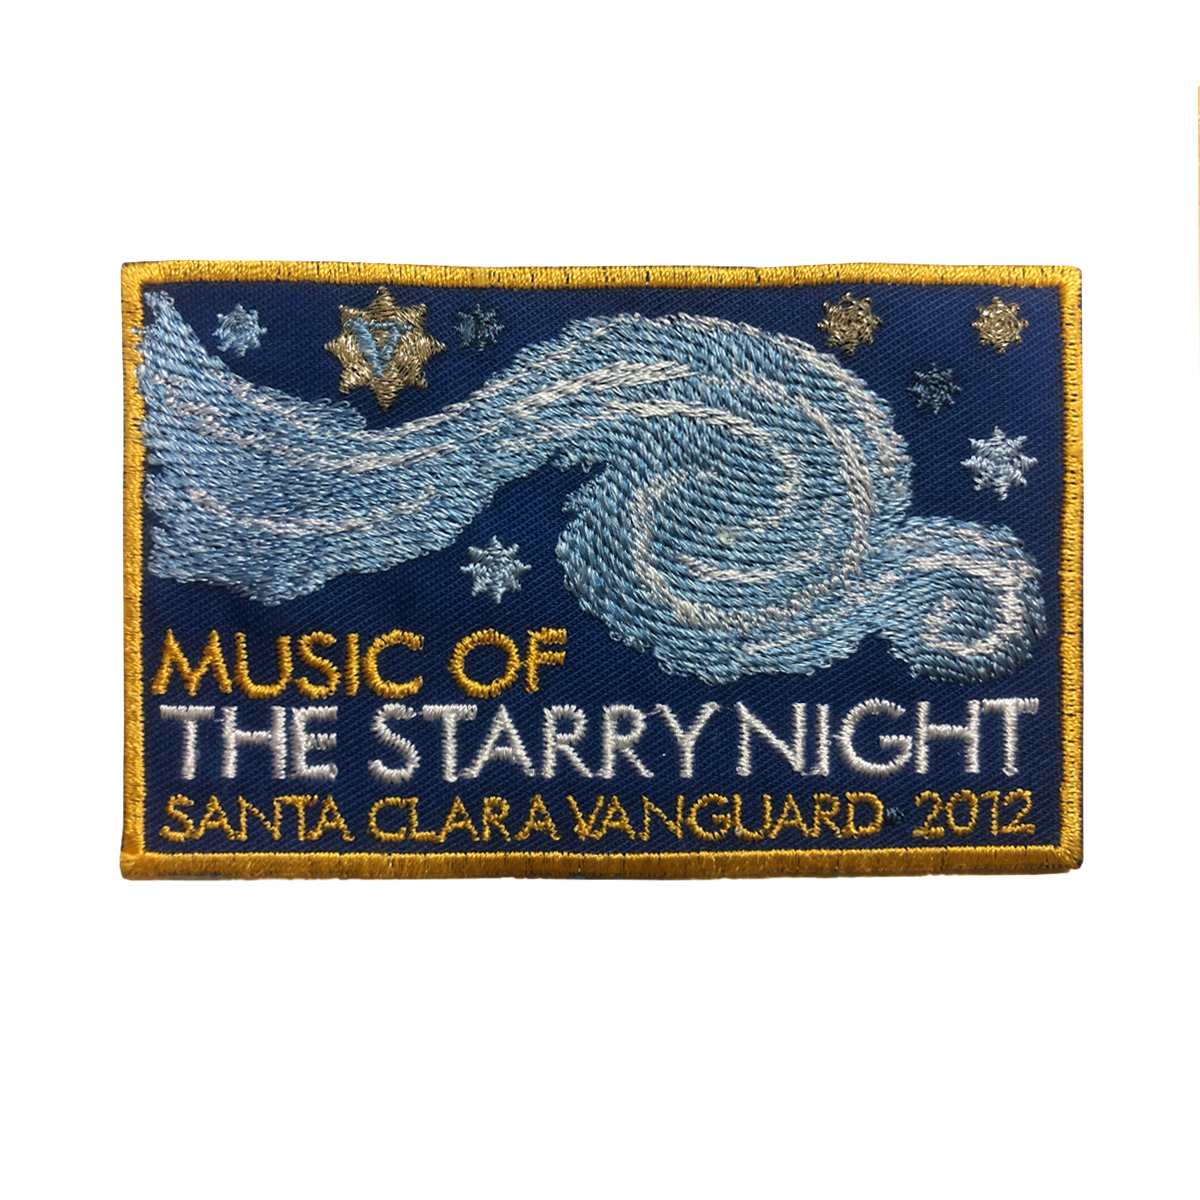 2012 Music of the Starry Night Show Patch